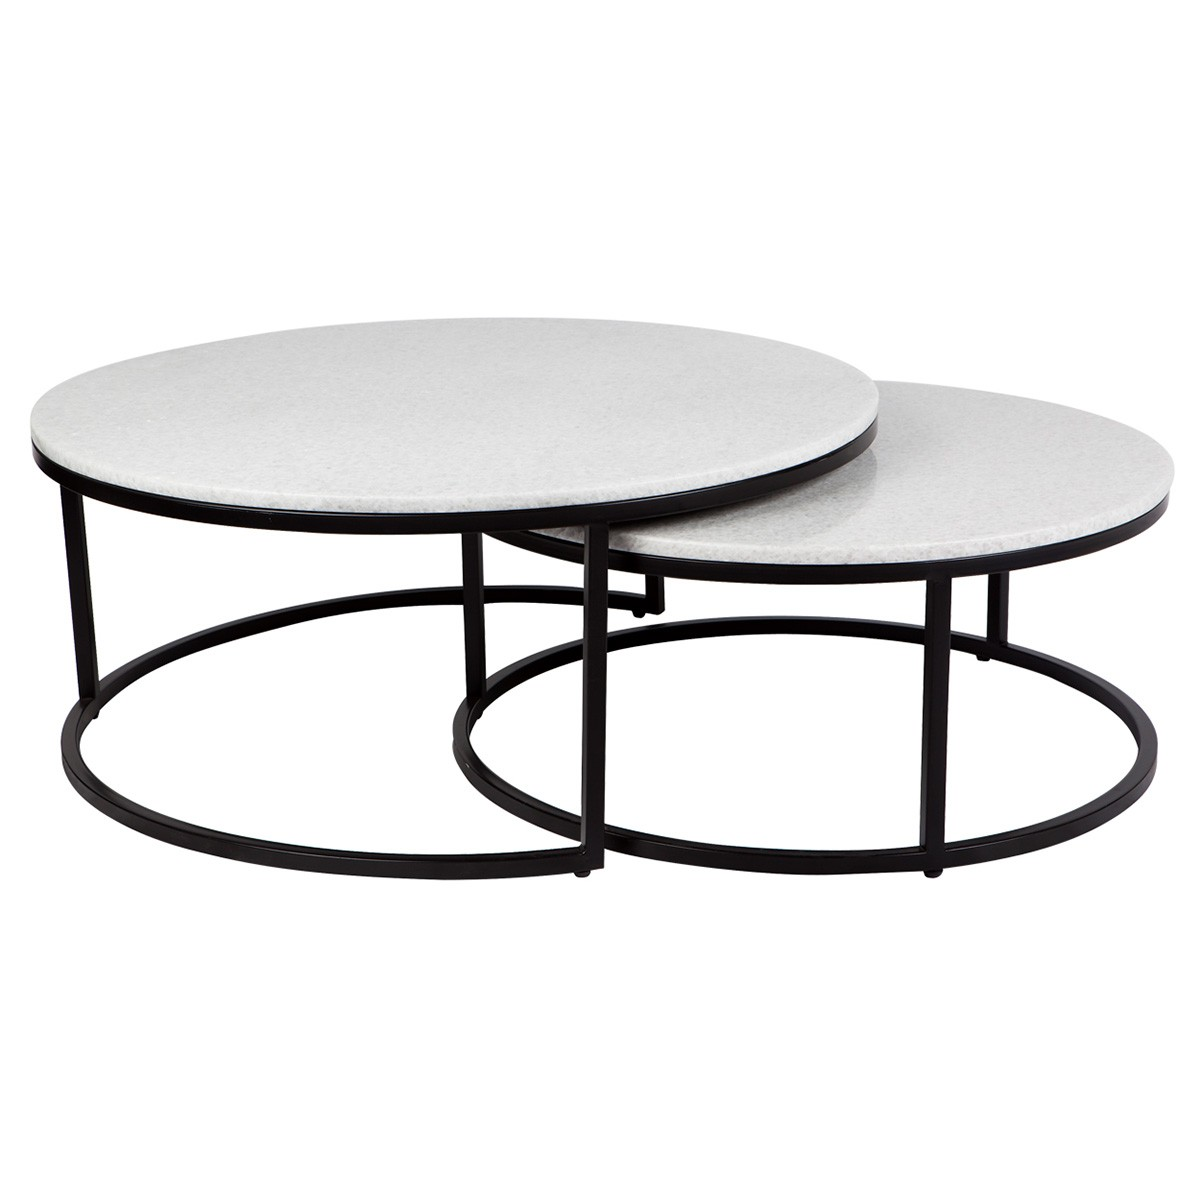 Chloe 2 Piece Iron & Stone Nested Coffee Table Set, 95cm, Black